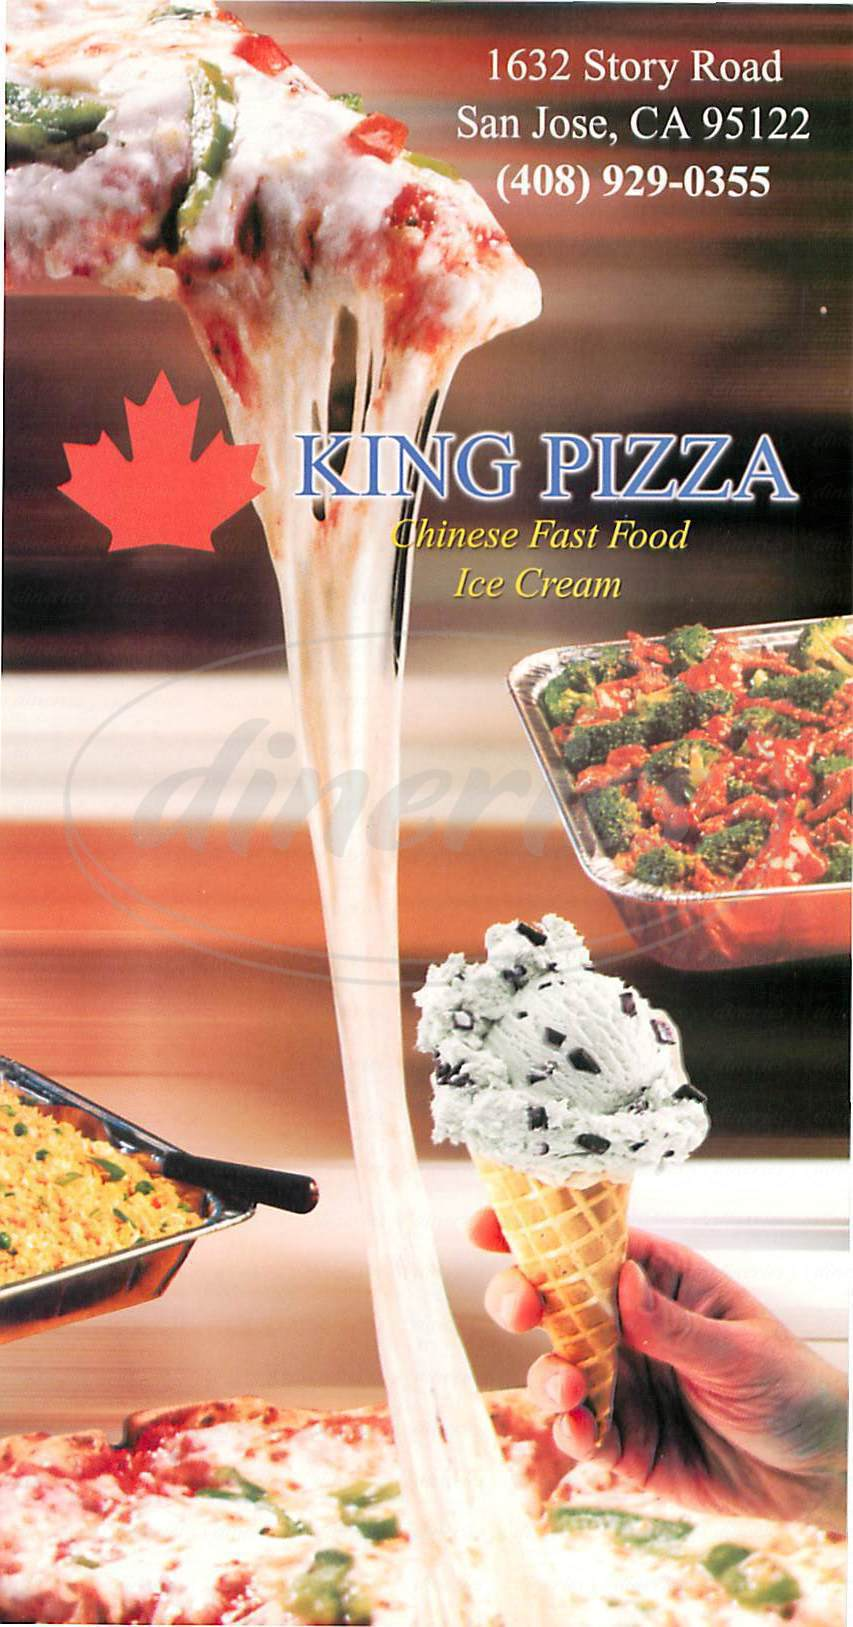 menu for King Pizza